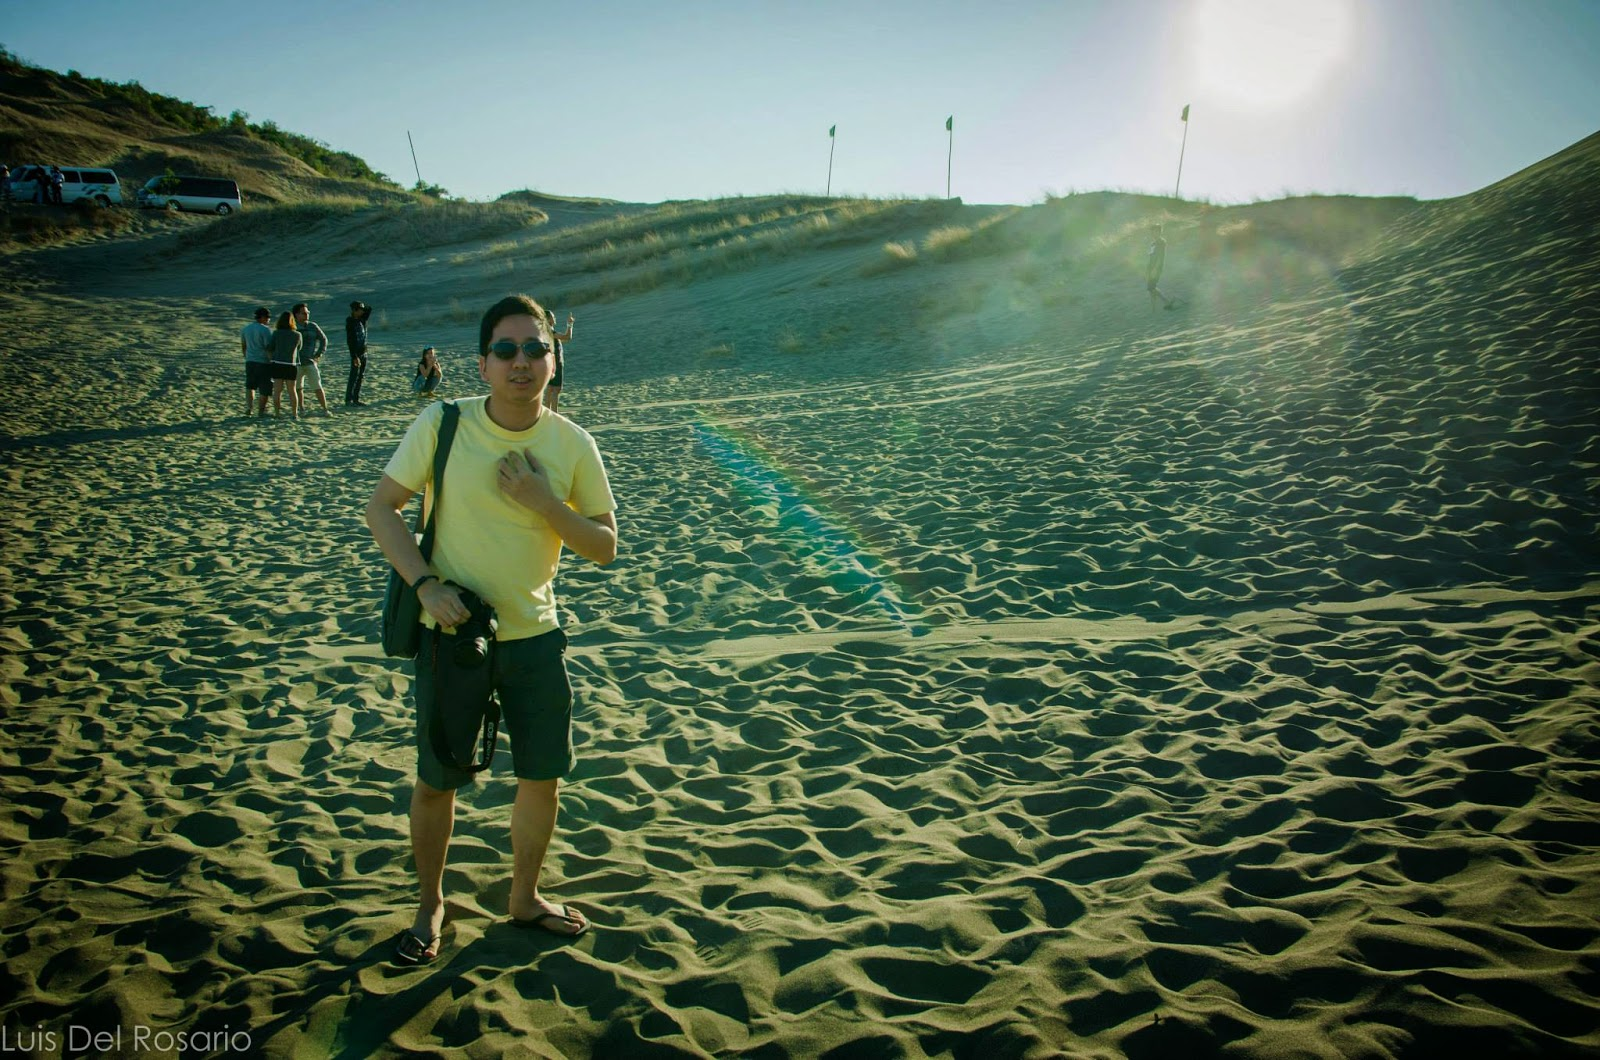 Sand Boarding and Top Activities in Paoay, Ilocos Norte